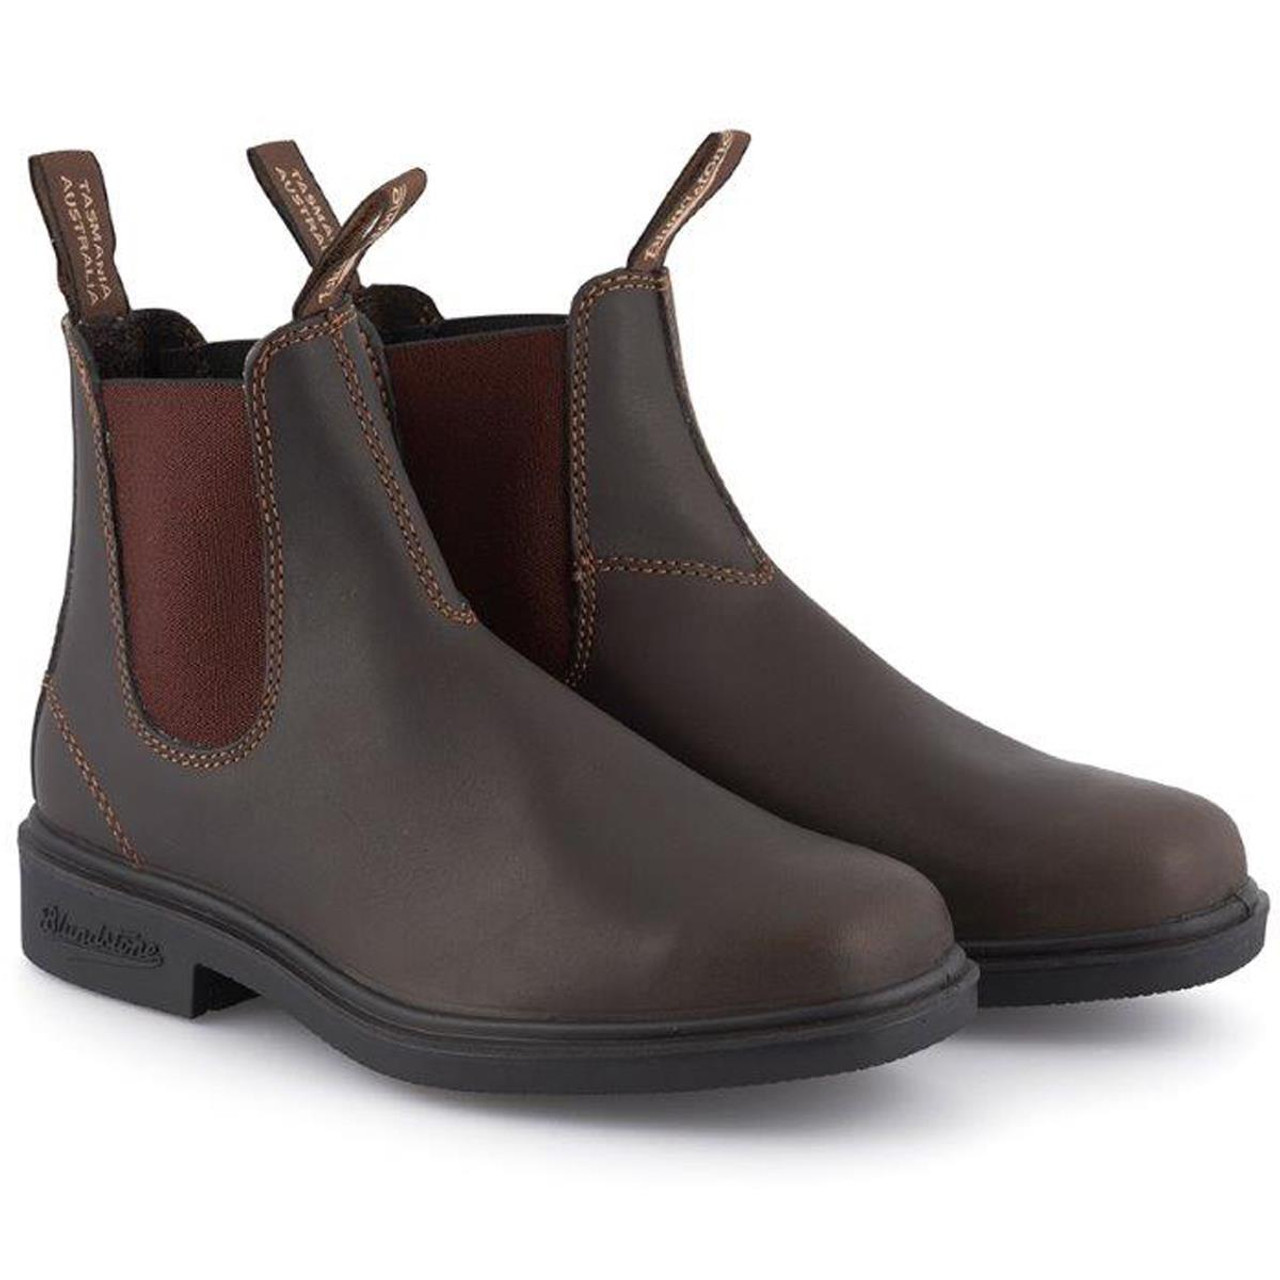 Blundstone Unisex Dress 062 Chelsea Boot